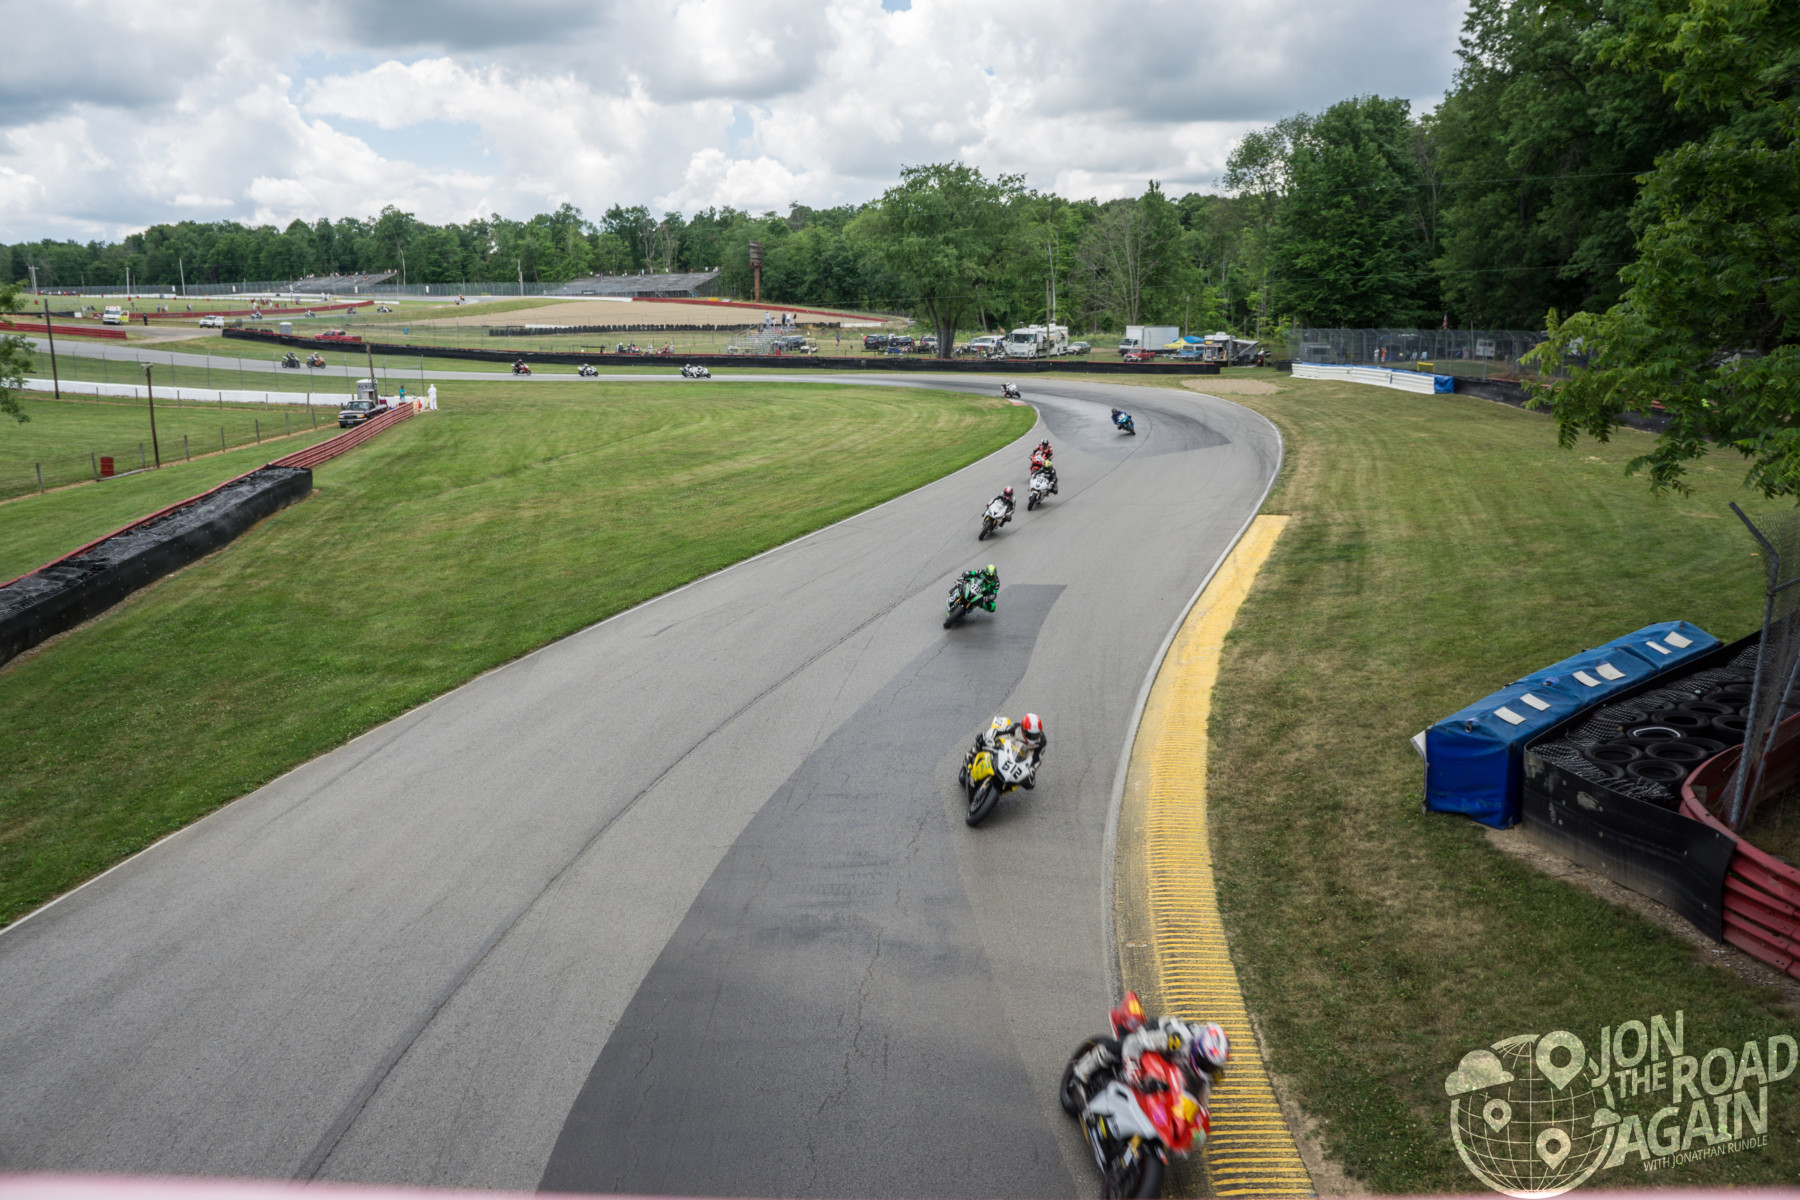 Motorcycle racing at mid-ohio at AMA Vintage Motorcycle Days